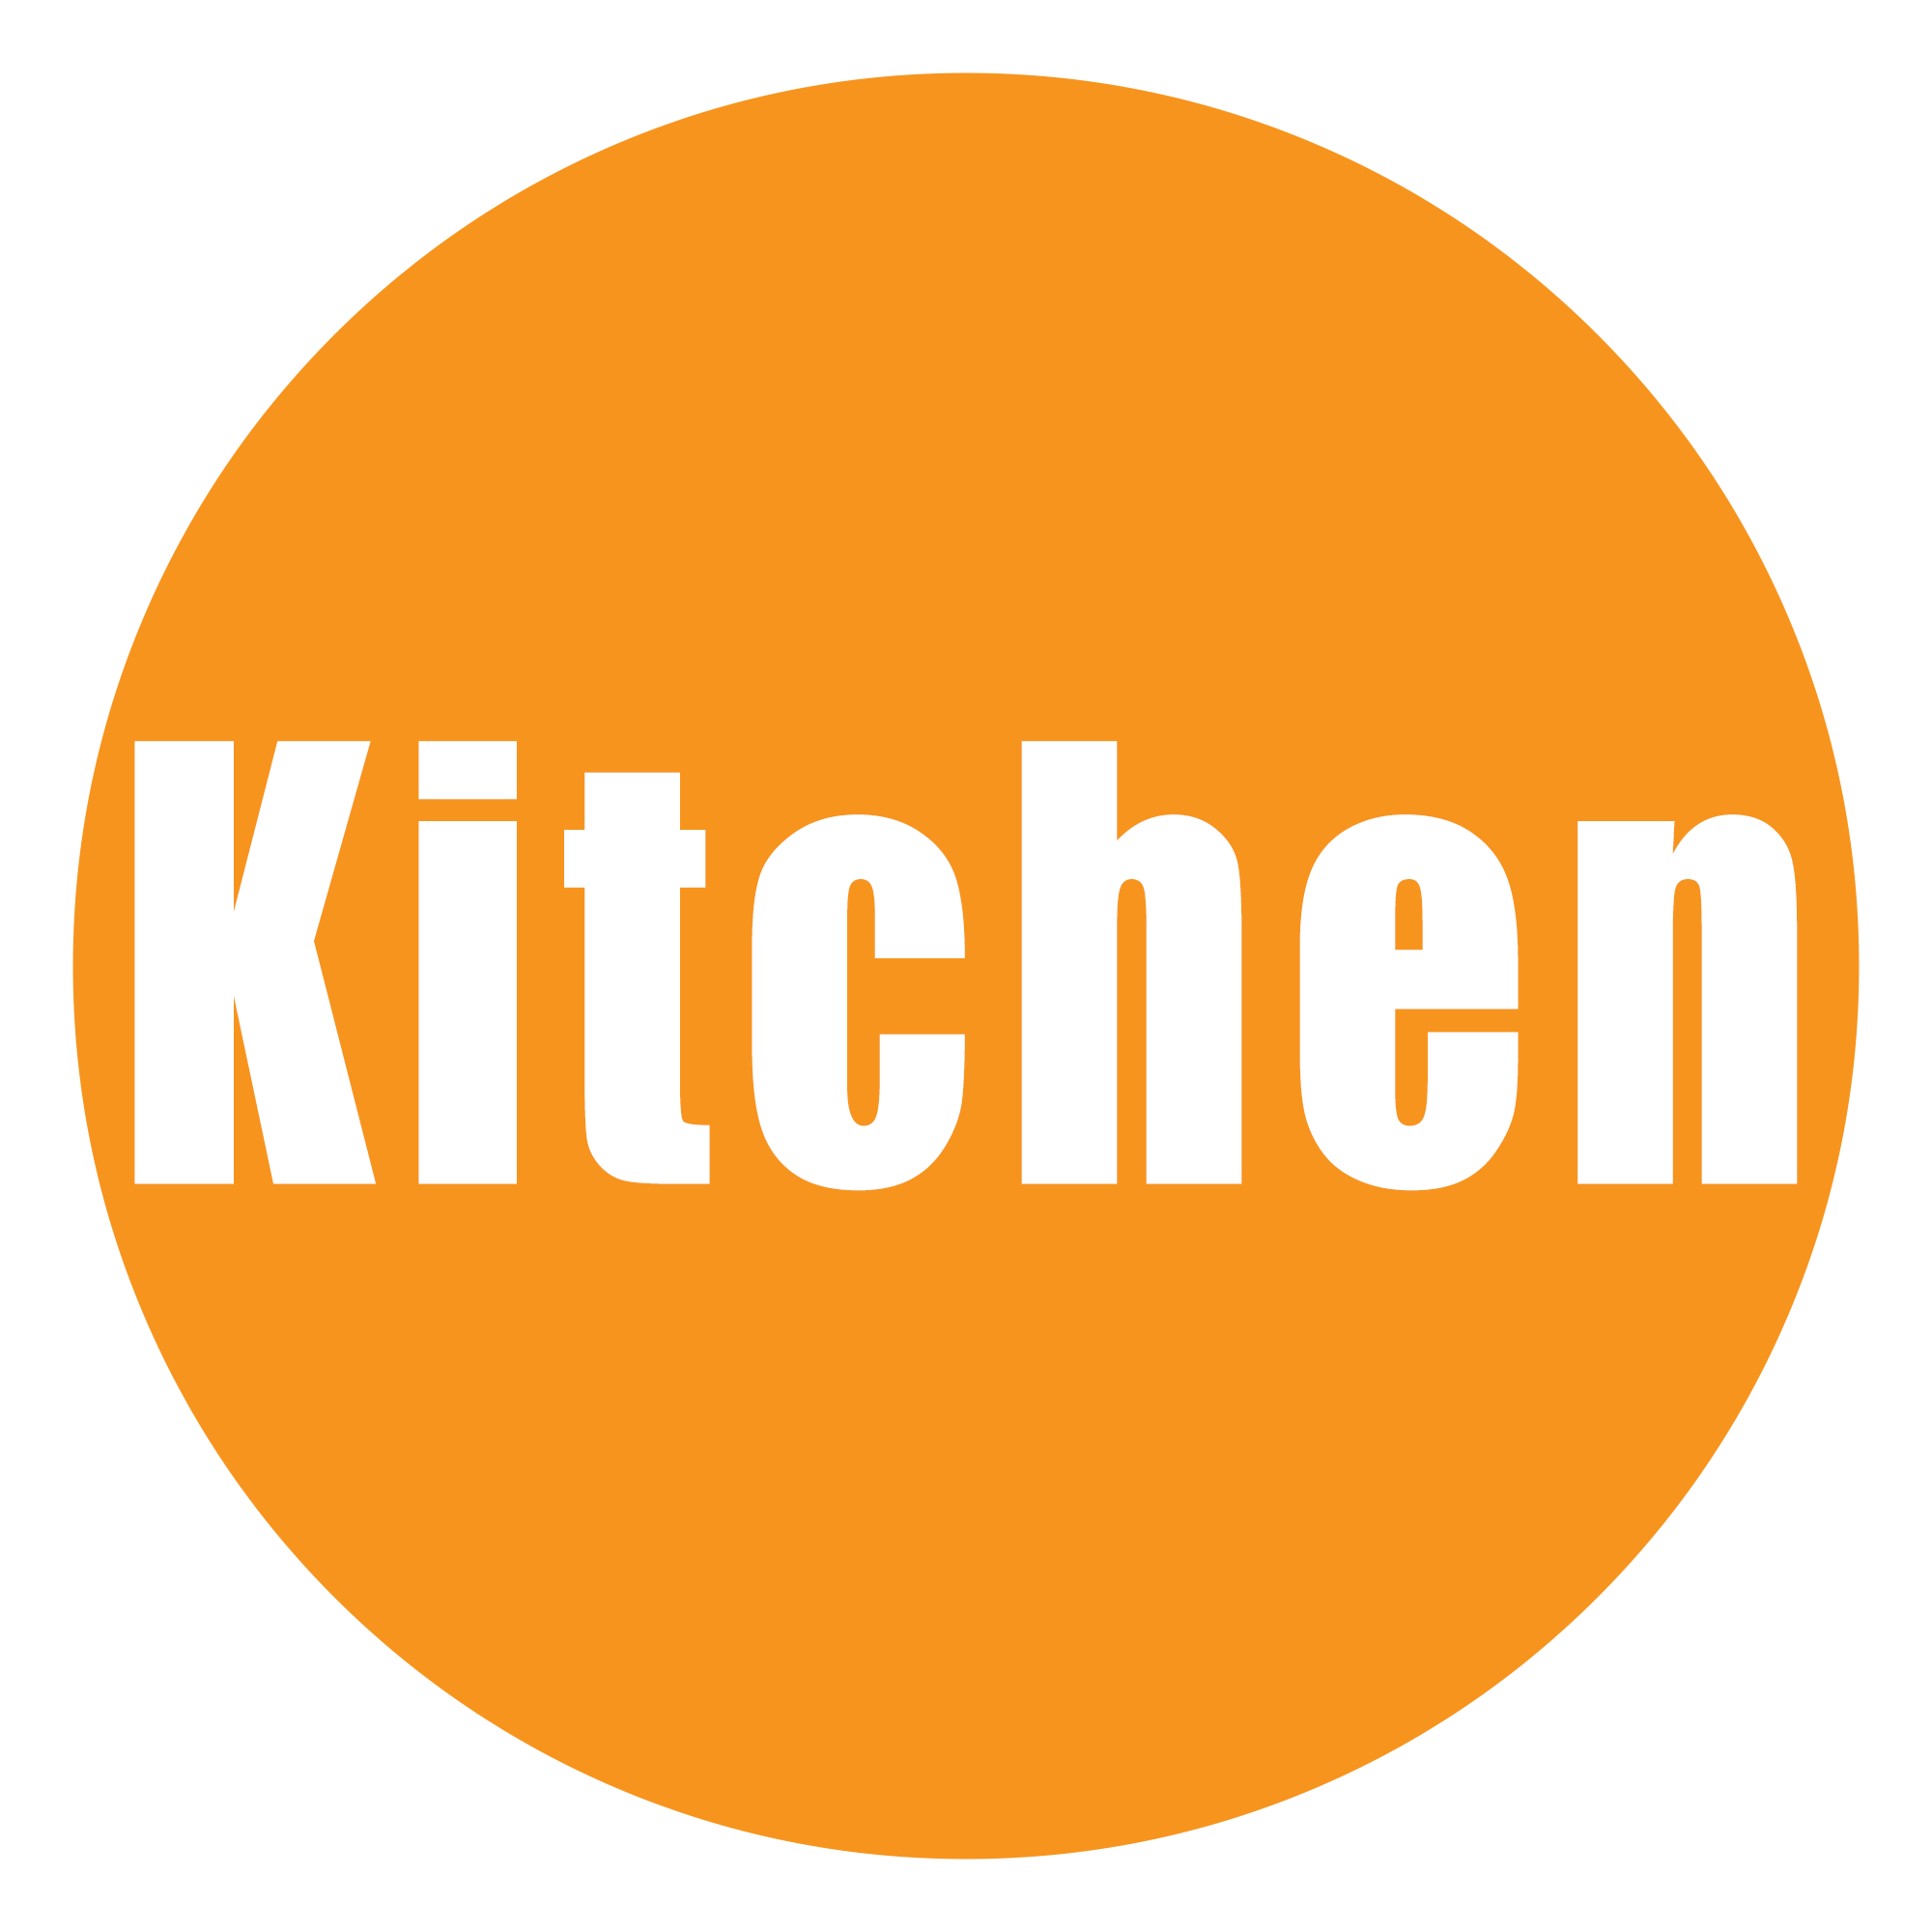 Kitchen Vector Image PNG